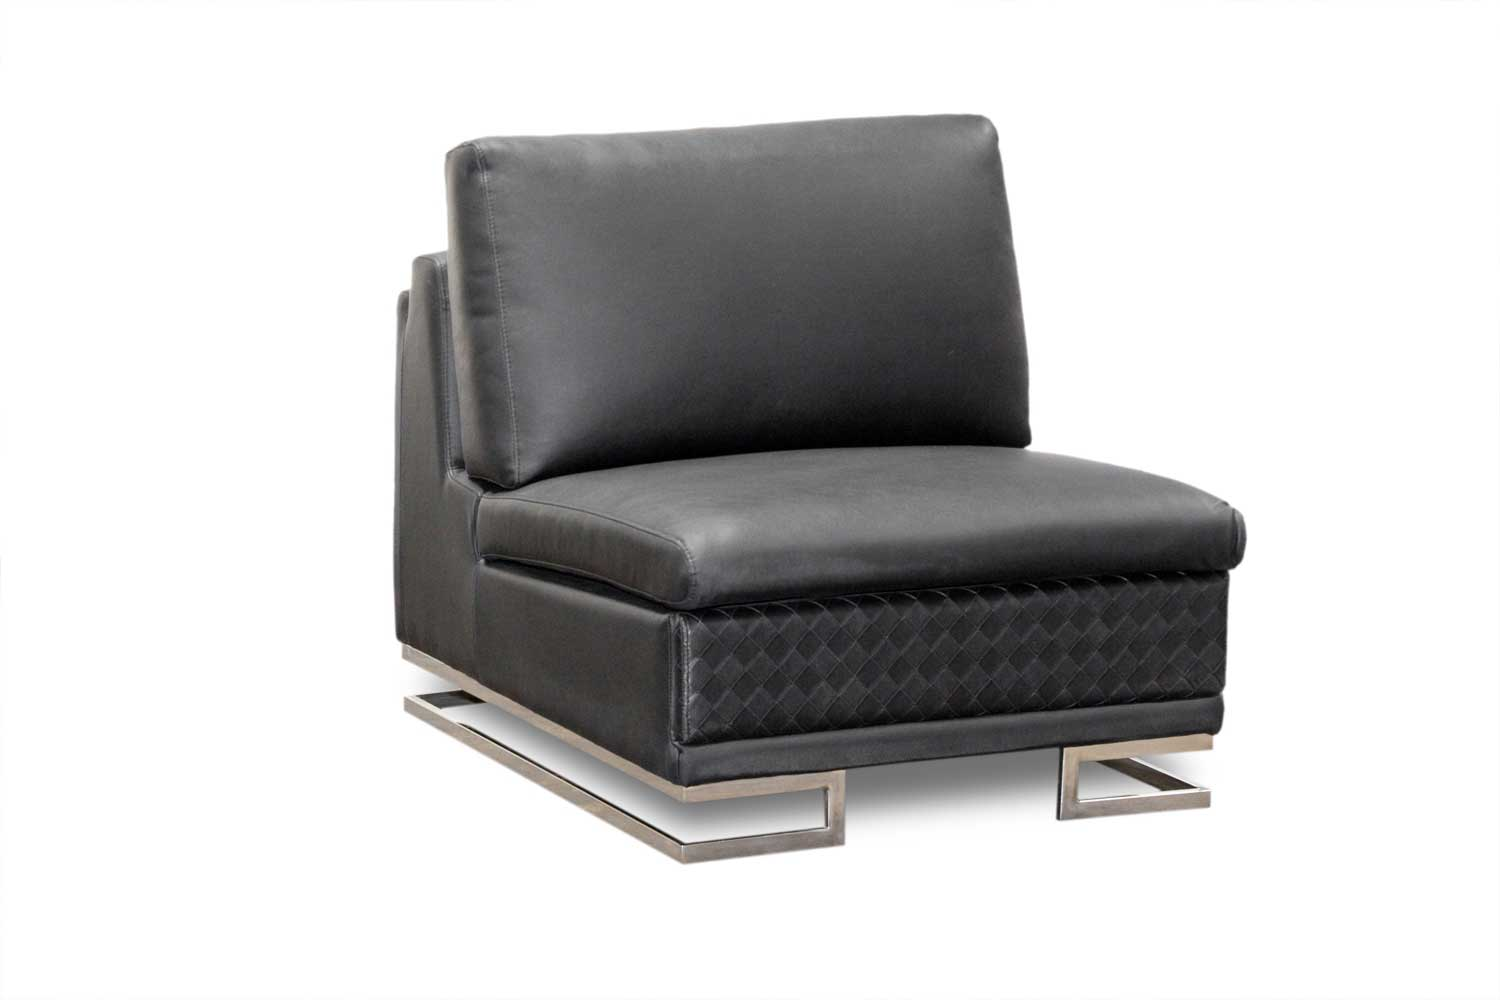 black armless leather chair in metal legs